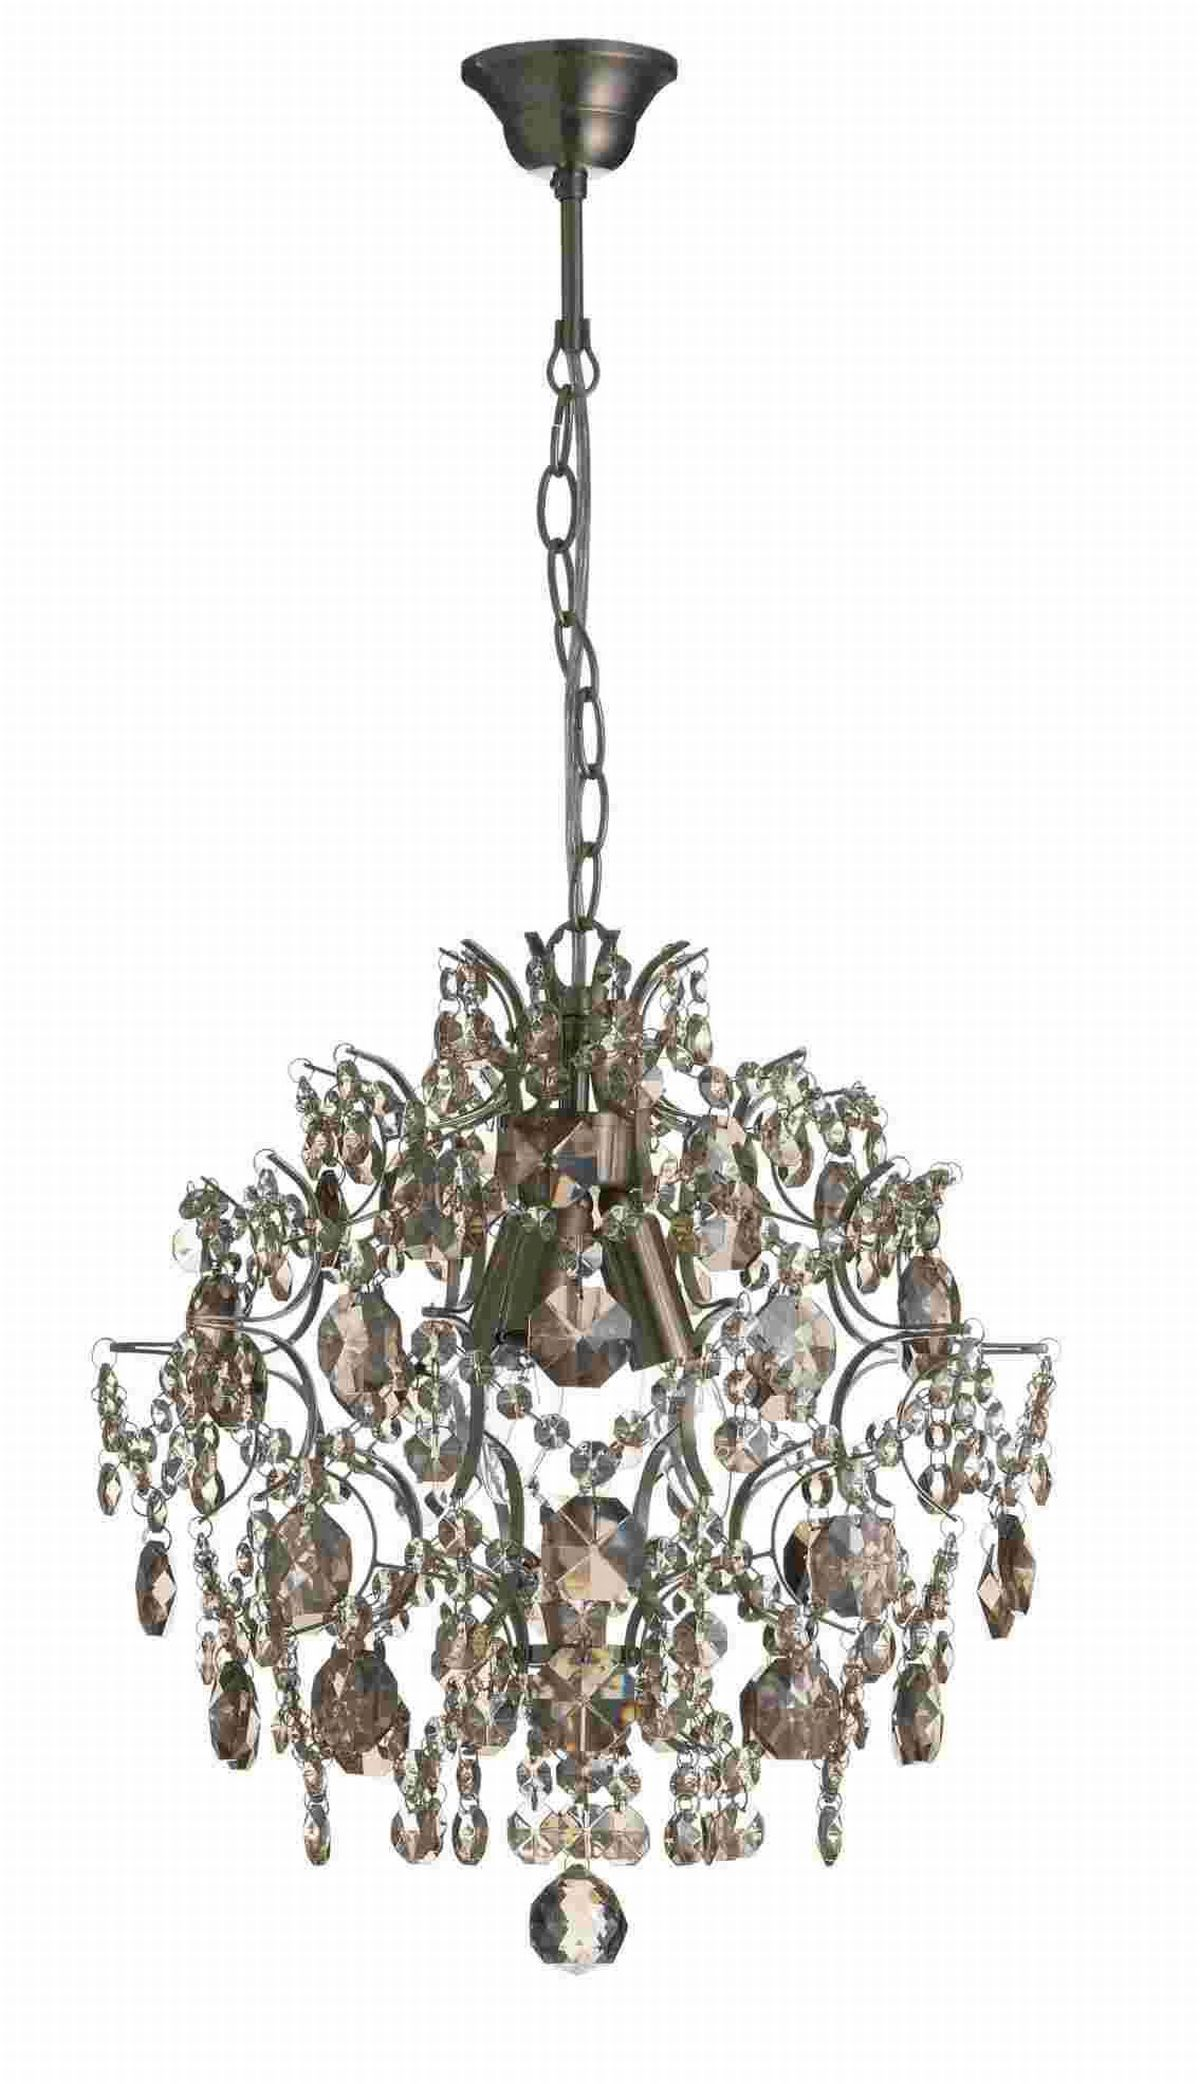 Chandeliers to suit your home chic and contemporary designs for chandeliers to suit your home chic and contemporary designs for every household bournemouth echo mozeypictures Choice Image